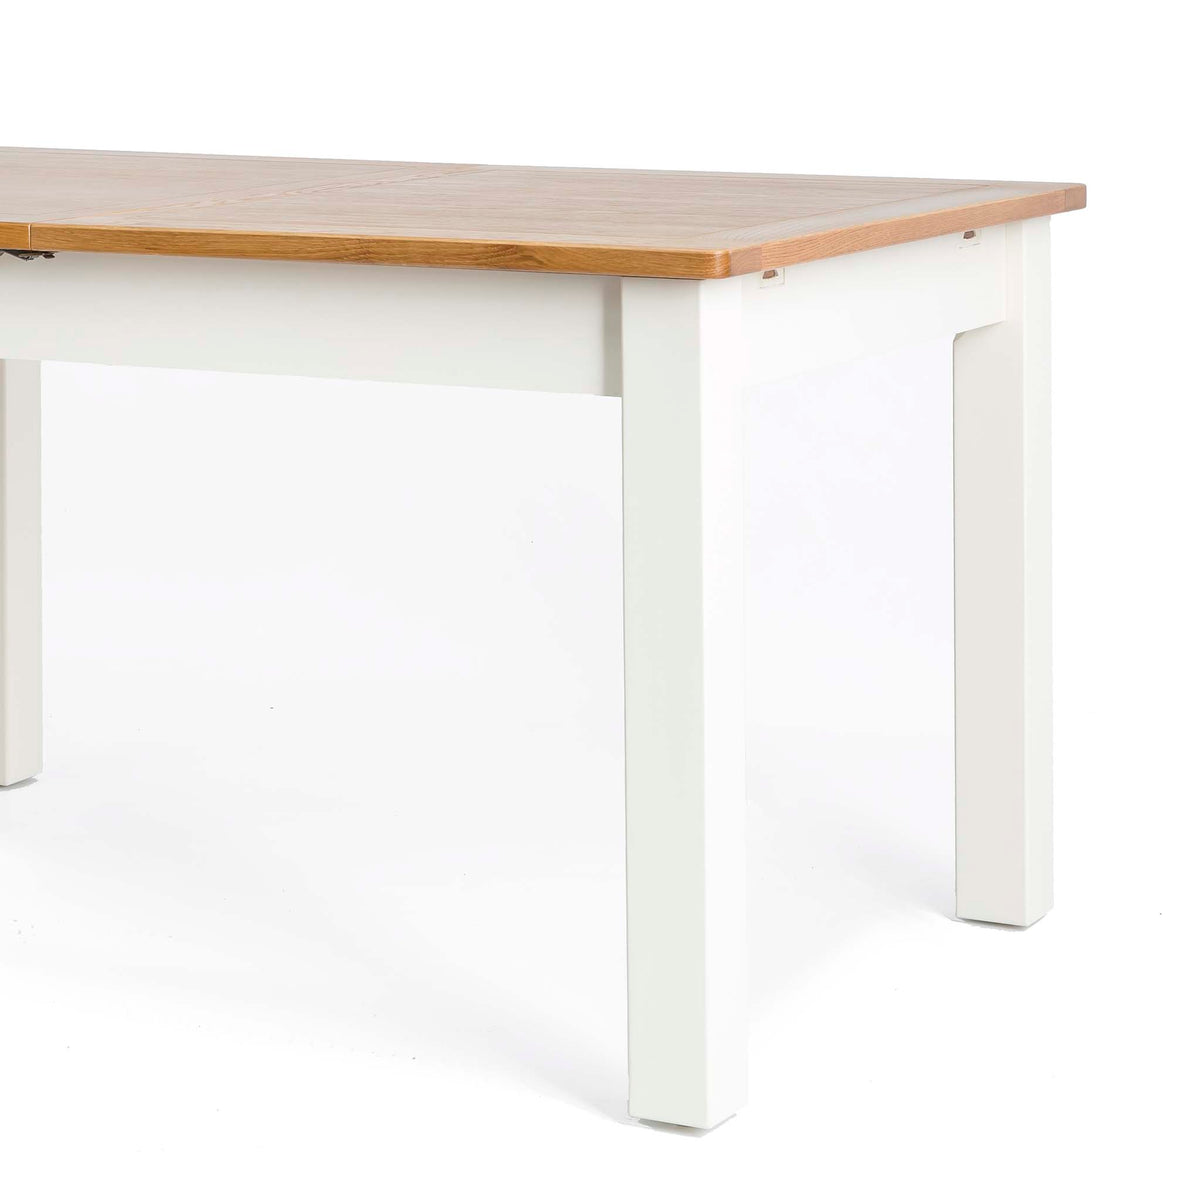 Padstow White Wooden Extending Dining Table - Close up of table top and legs